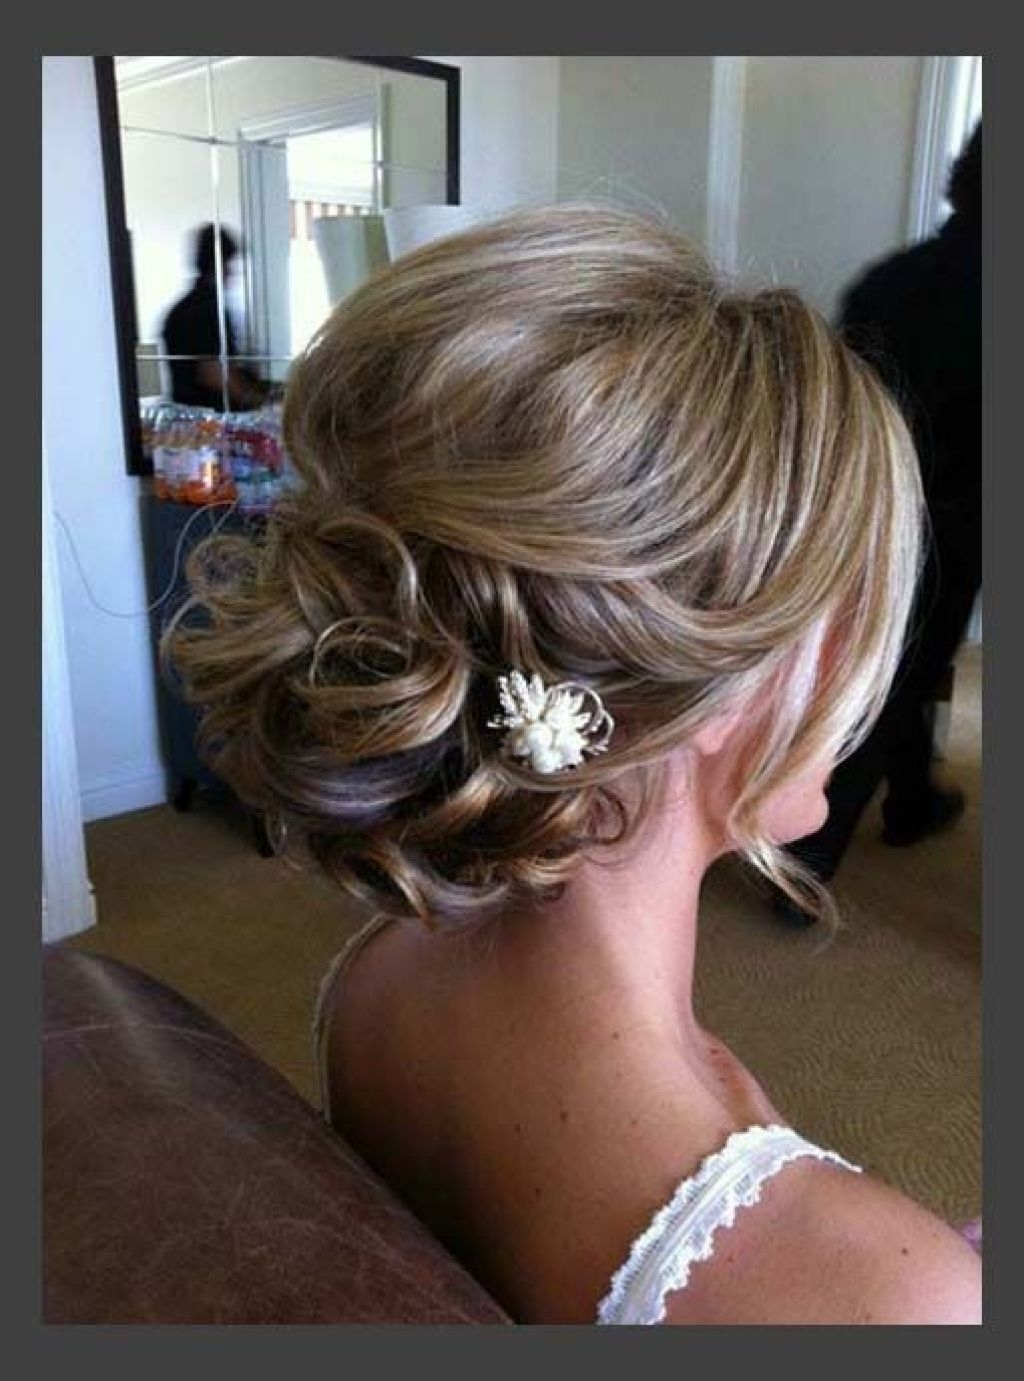 Favorite Wedding Hairstyles For Medium Hair For Bridesmaids Regarding Bridesmaid Hairstyles Medium Length Hair – Hairstyle For Women & Man (View 10 of 15)